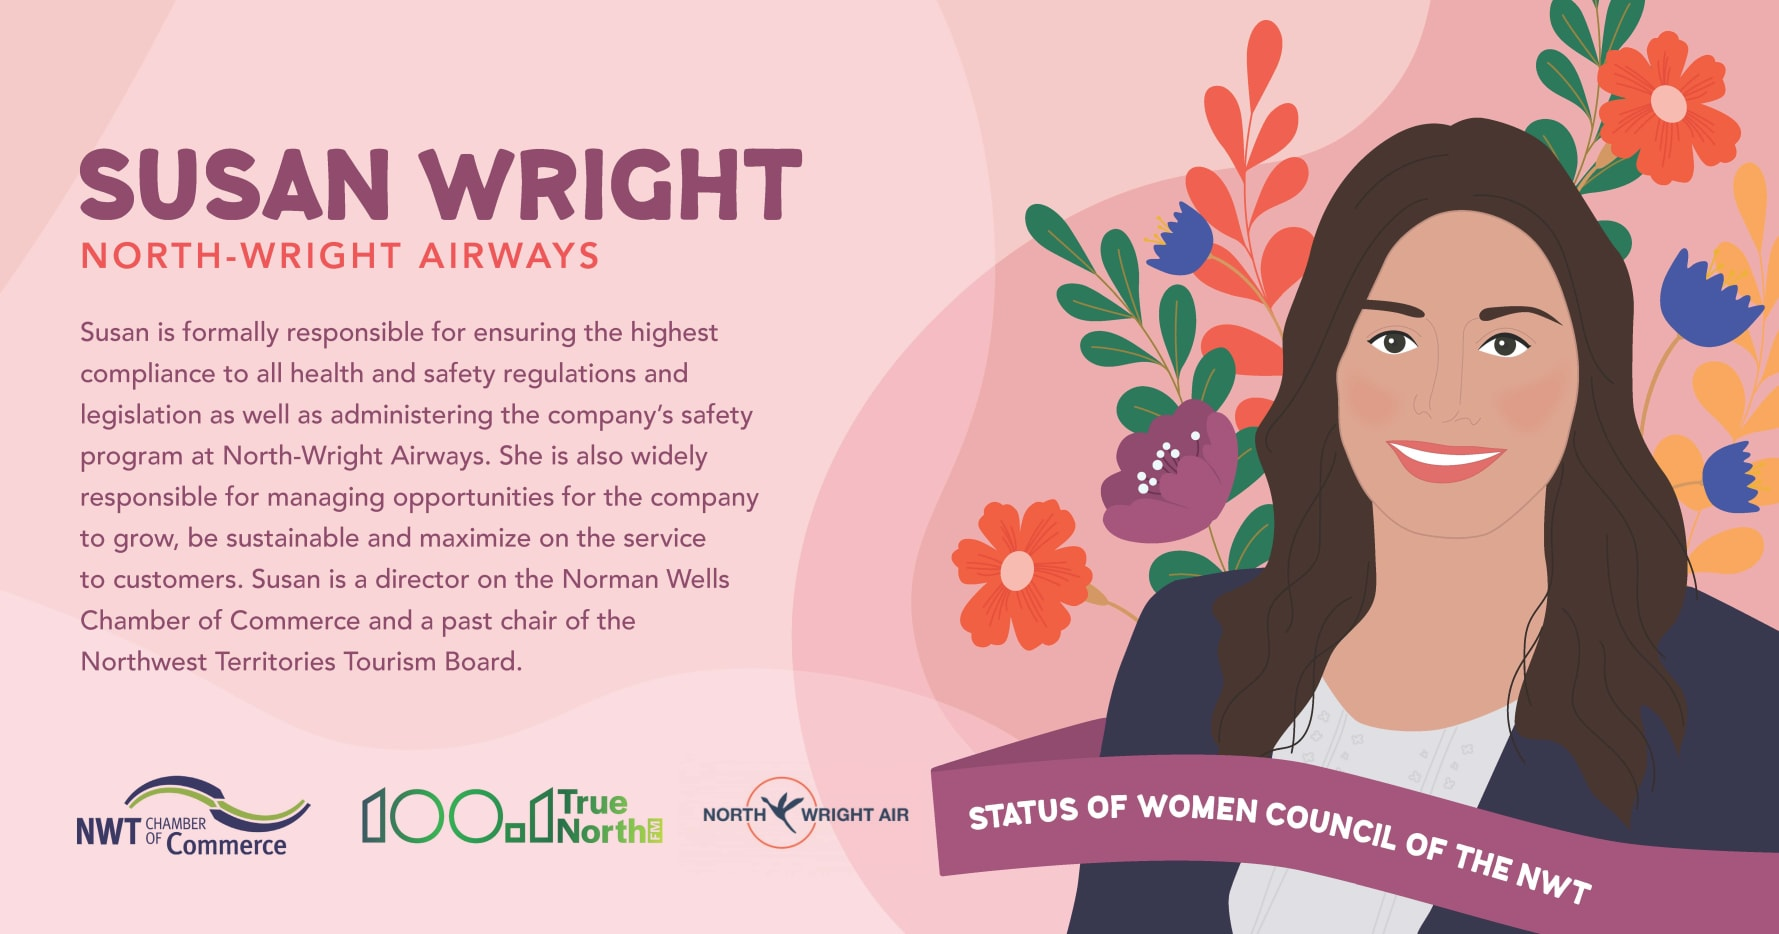 3820---SWC---International-Women's-Month-Facebook-Ad-SusanWright-w1779.jpg